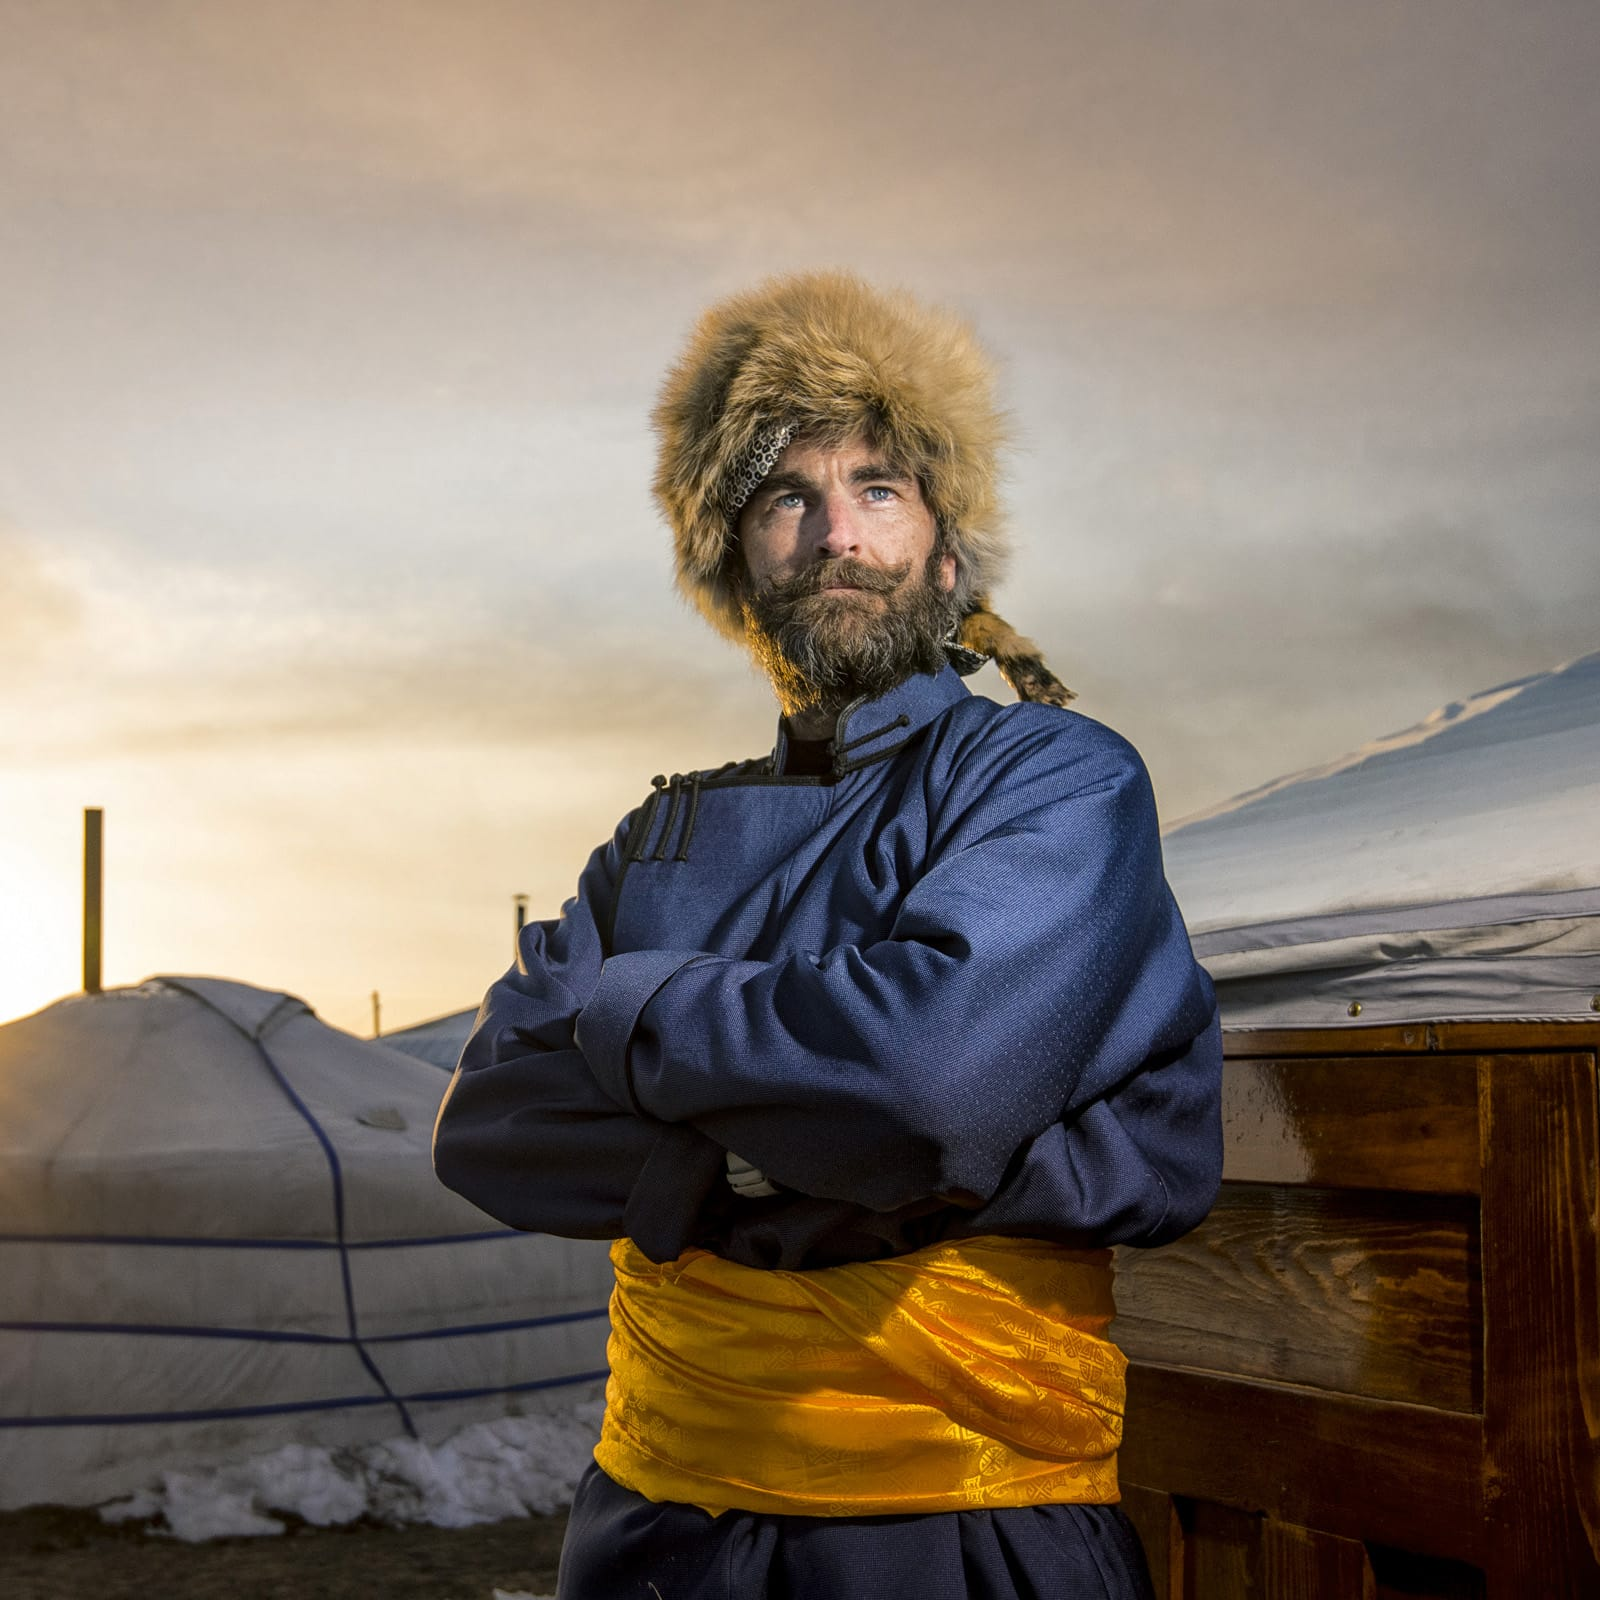 The Badger Unleashed comes face-to-face with -25c, 100-mile Ultramarathon in Mongolia